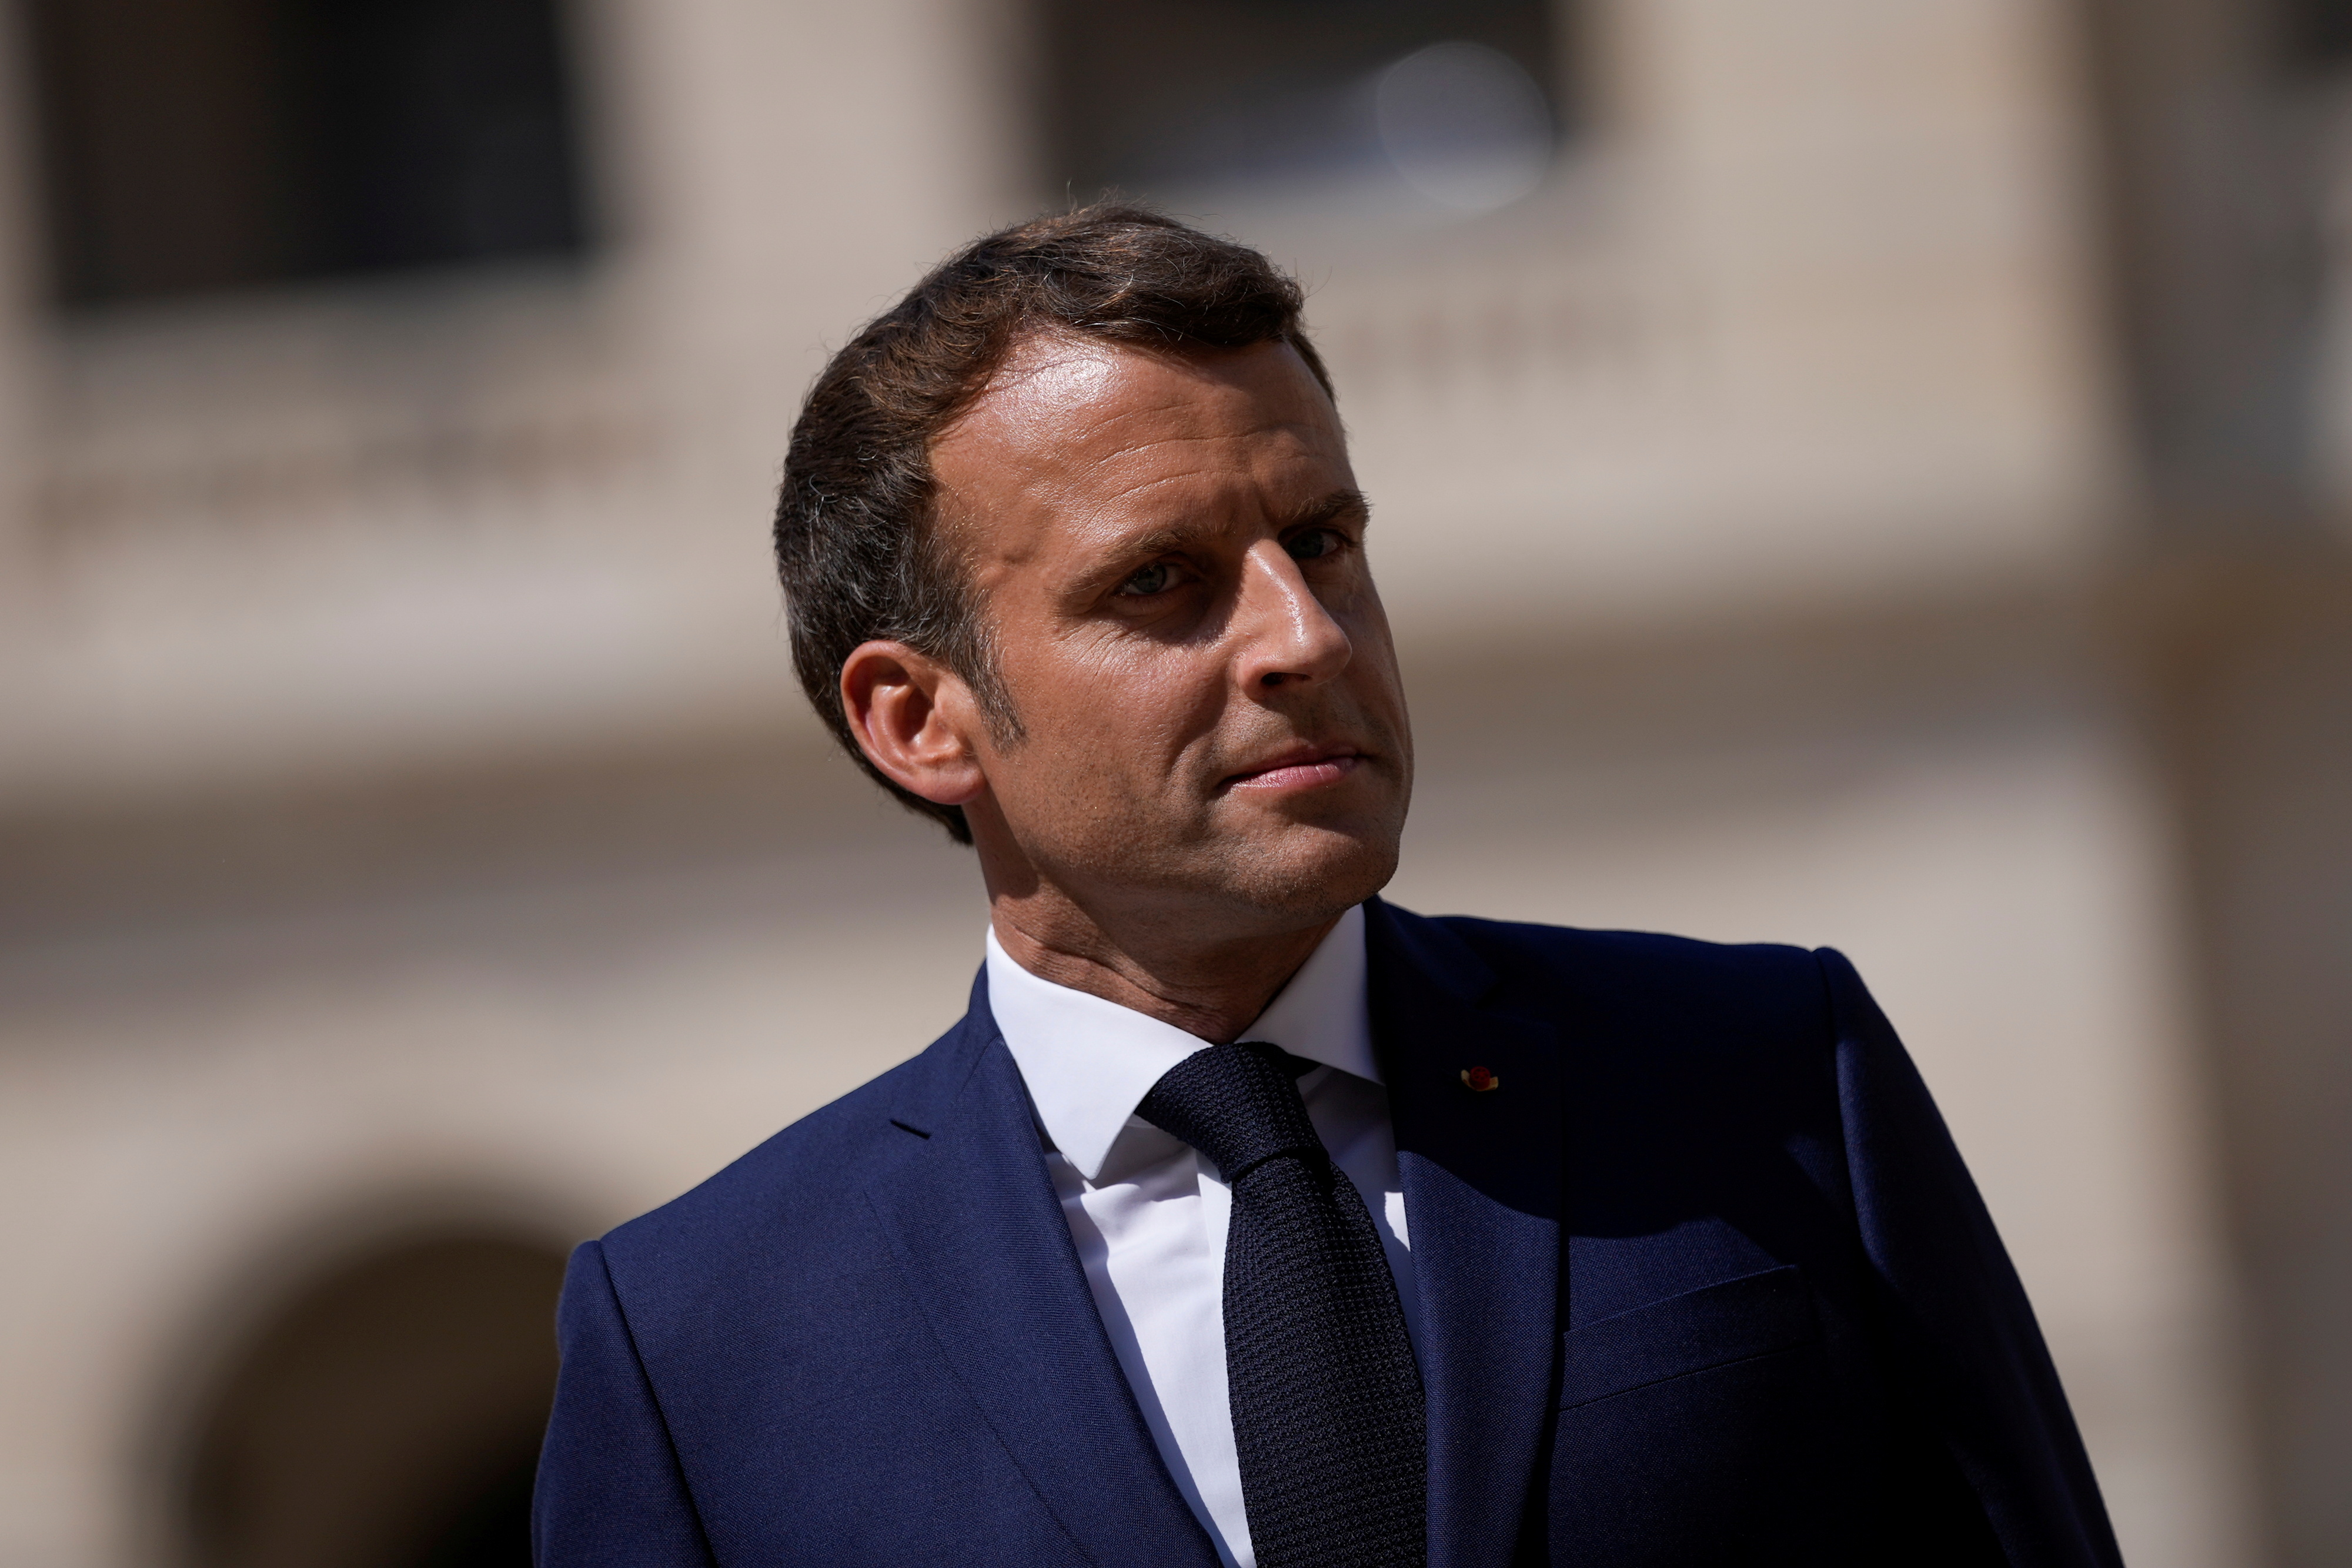 French President Emmanuel Macron attends a farewell ceremony for the French armed forces chief of staff, General Francois Lecointre at the Invalides monument in Paris, France July 21, 2021. Daniel Cole/Pool via REUTERS/File Photo